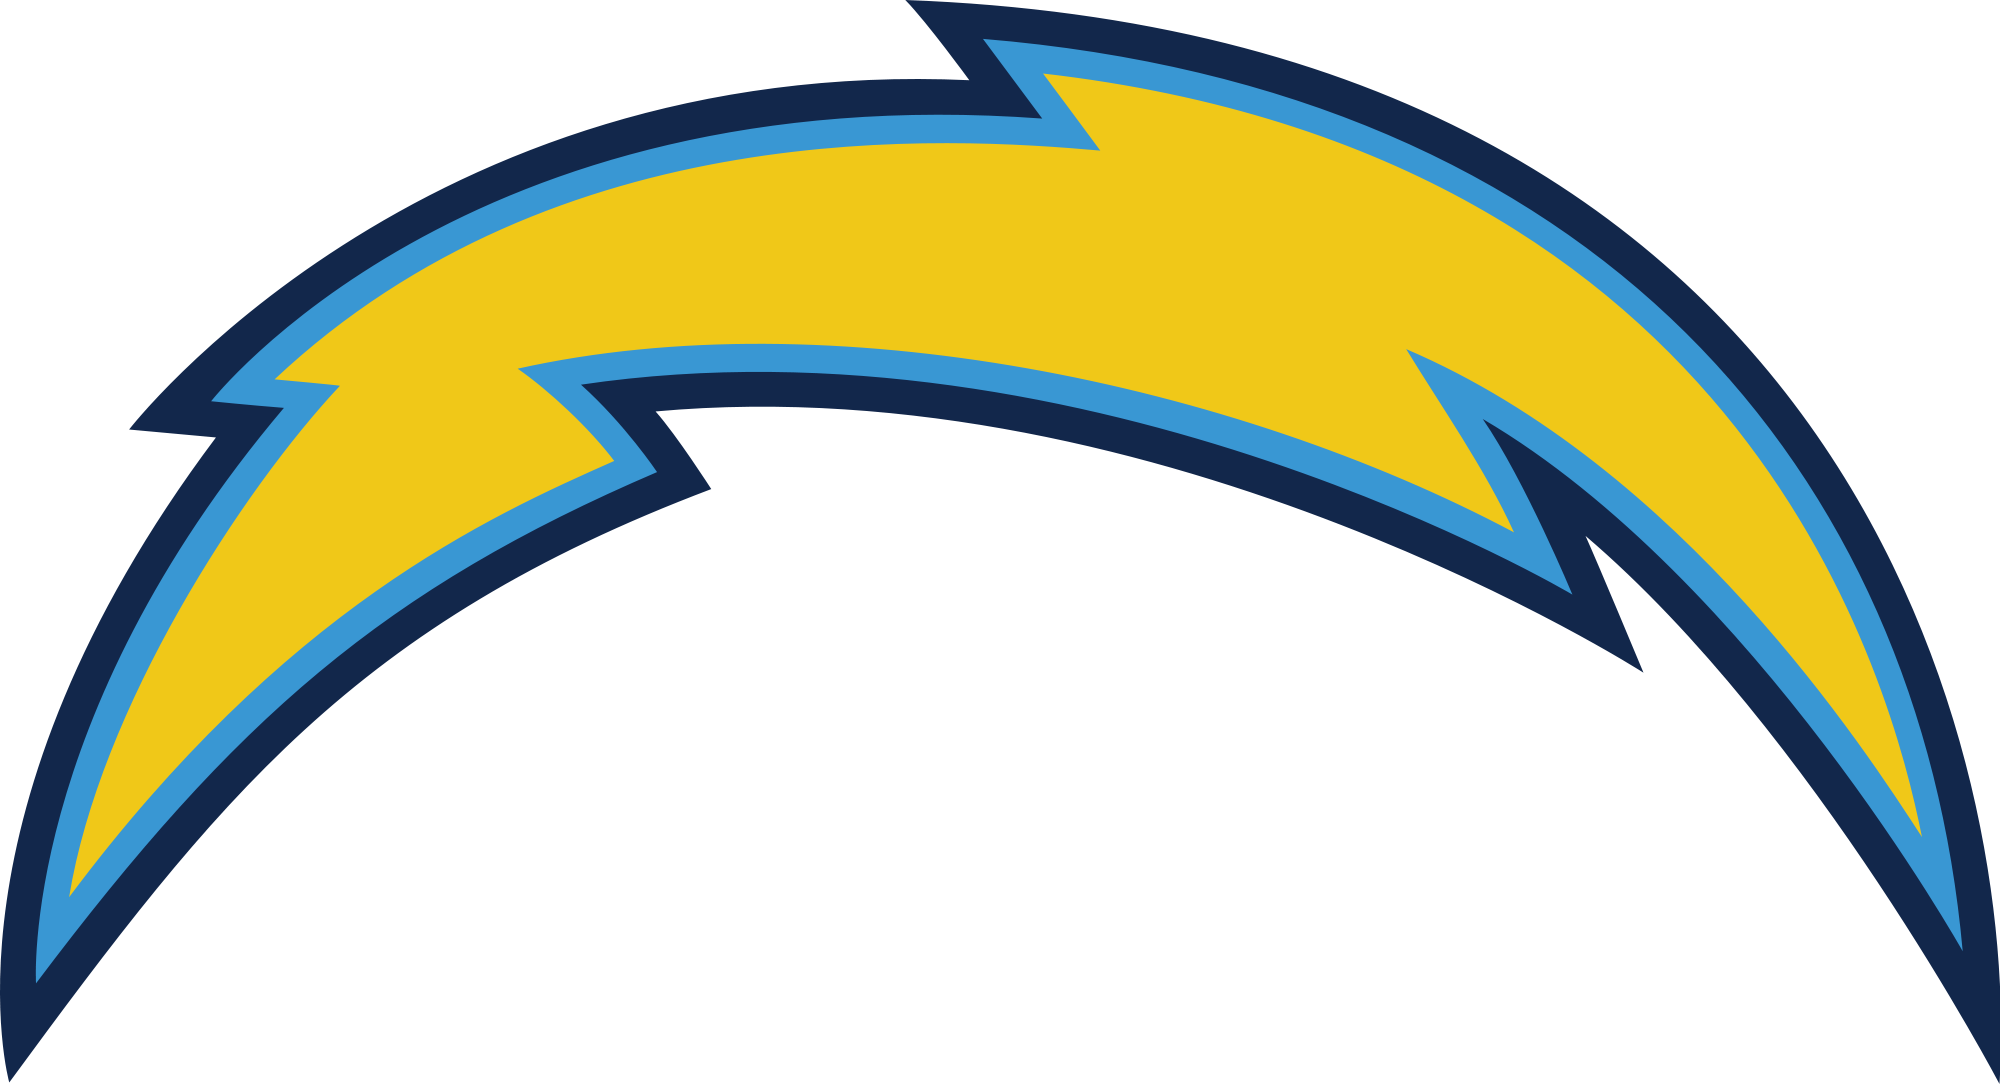 San Diego Chargers Wallpaper Wallpaper Download 2000x1084